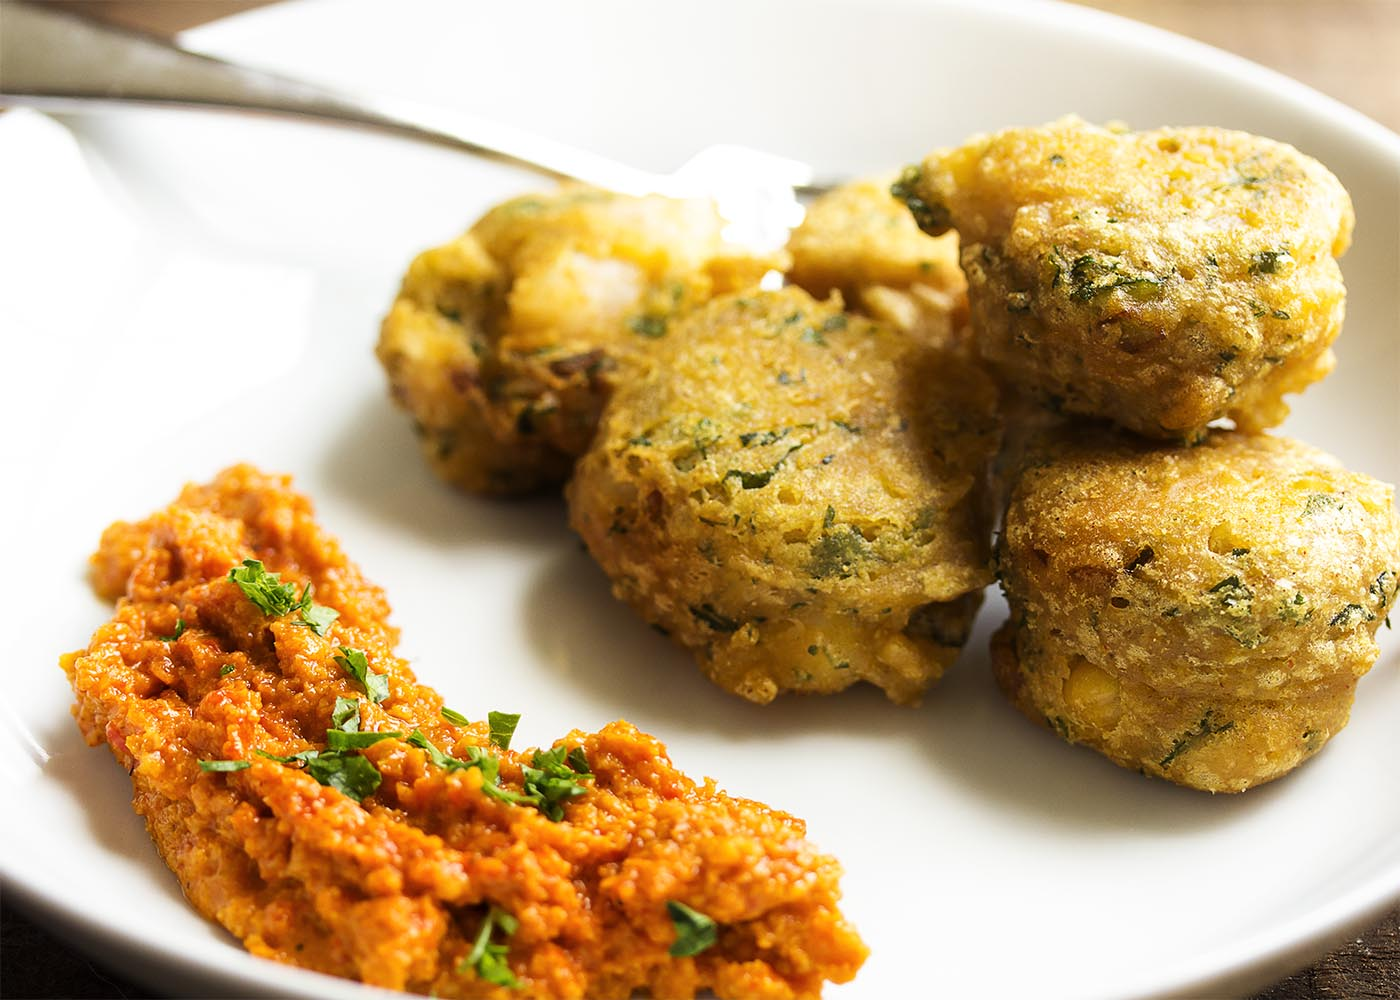 Gluten Free Chickpea Shrimp Fritters - These light and crispy fritters of chickpea flour and chopped shrimp are quickly fried to make a tasty and gluten free appetizer. The recipe includes a vegan option too!   justalittlebitofbacon.com